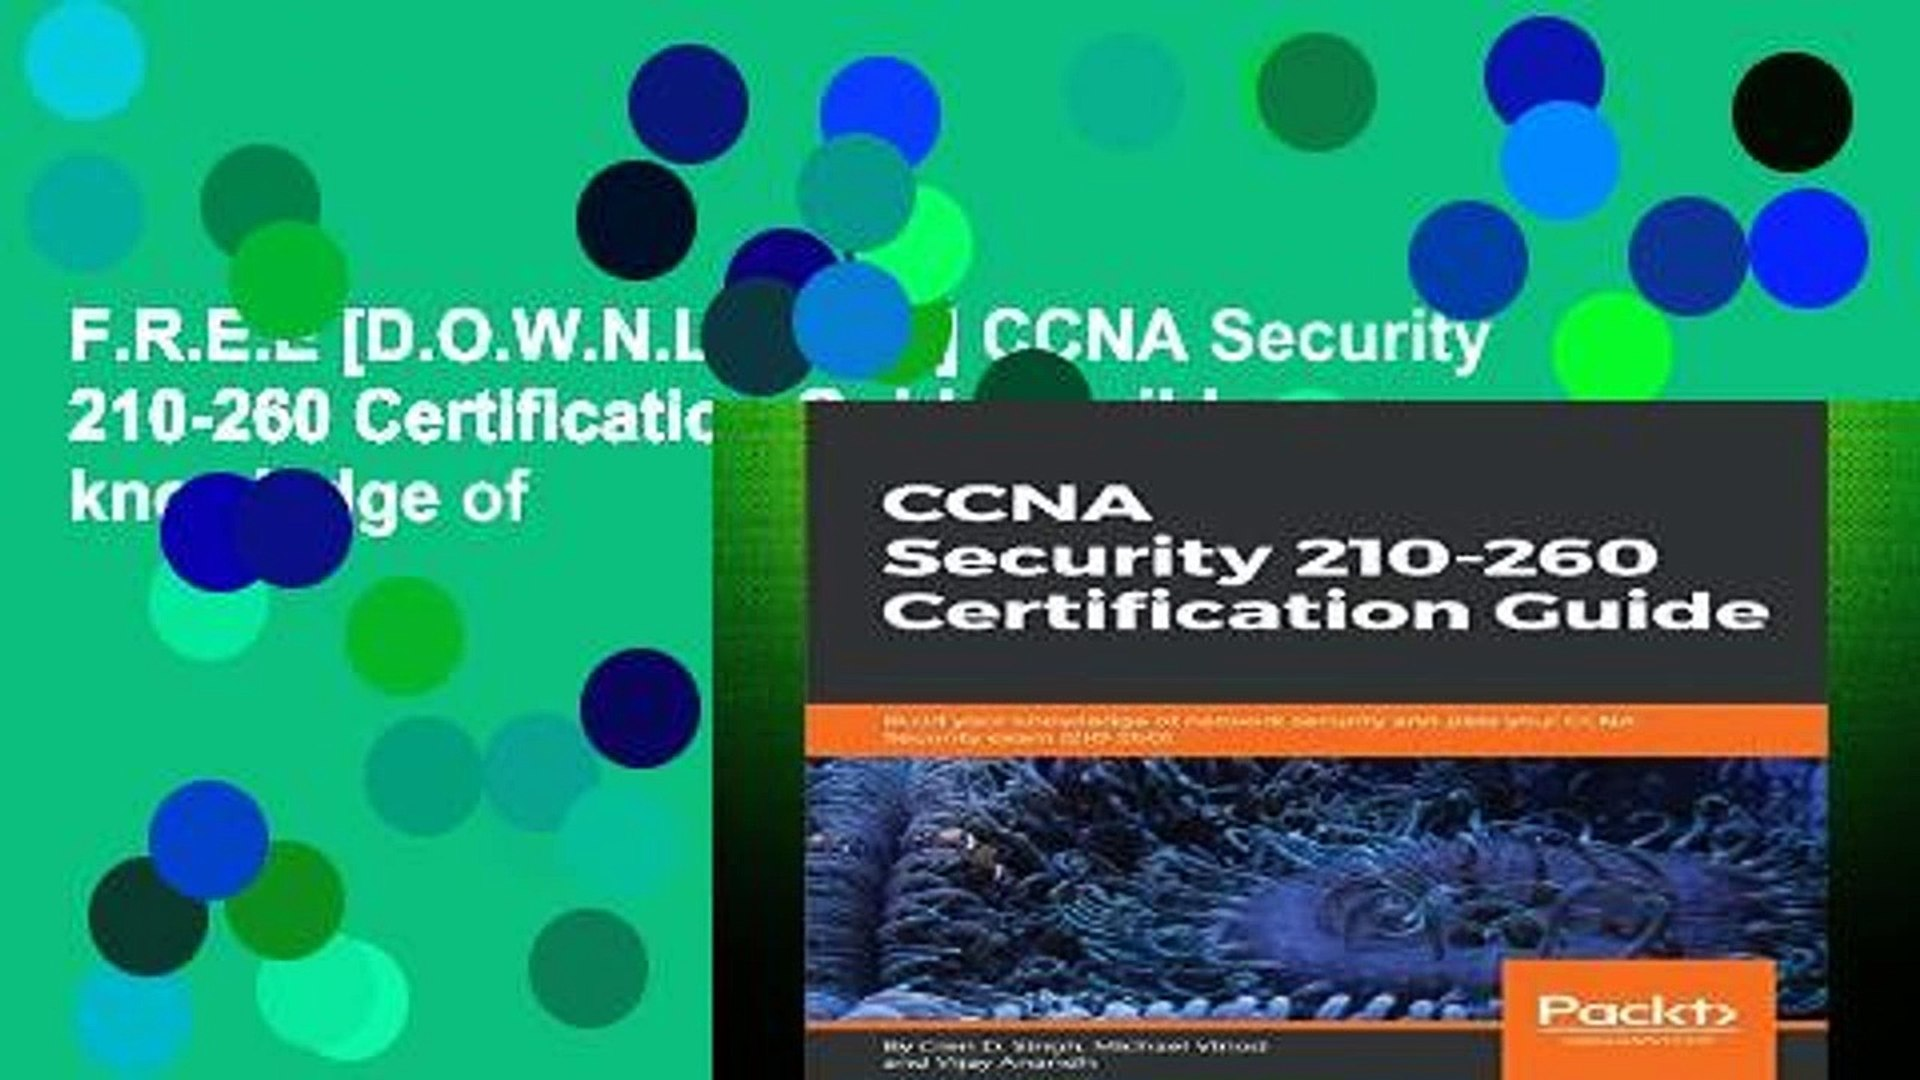 210-260 CCNA Security 210-260 Certification Guide Build your knowledge of network security and pass your CCNA Security exam